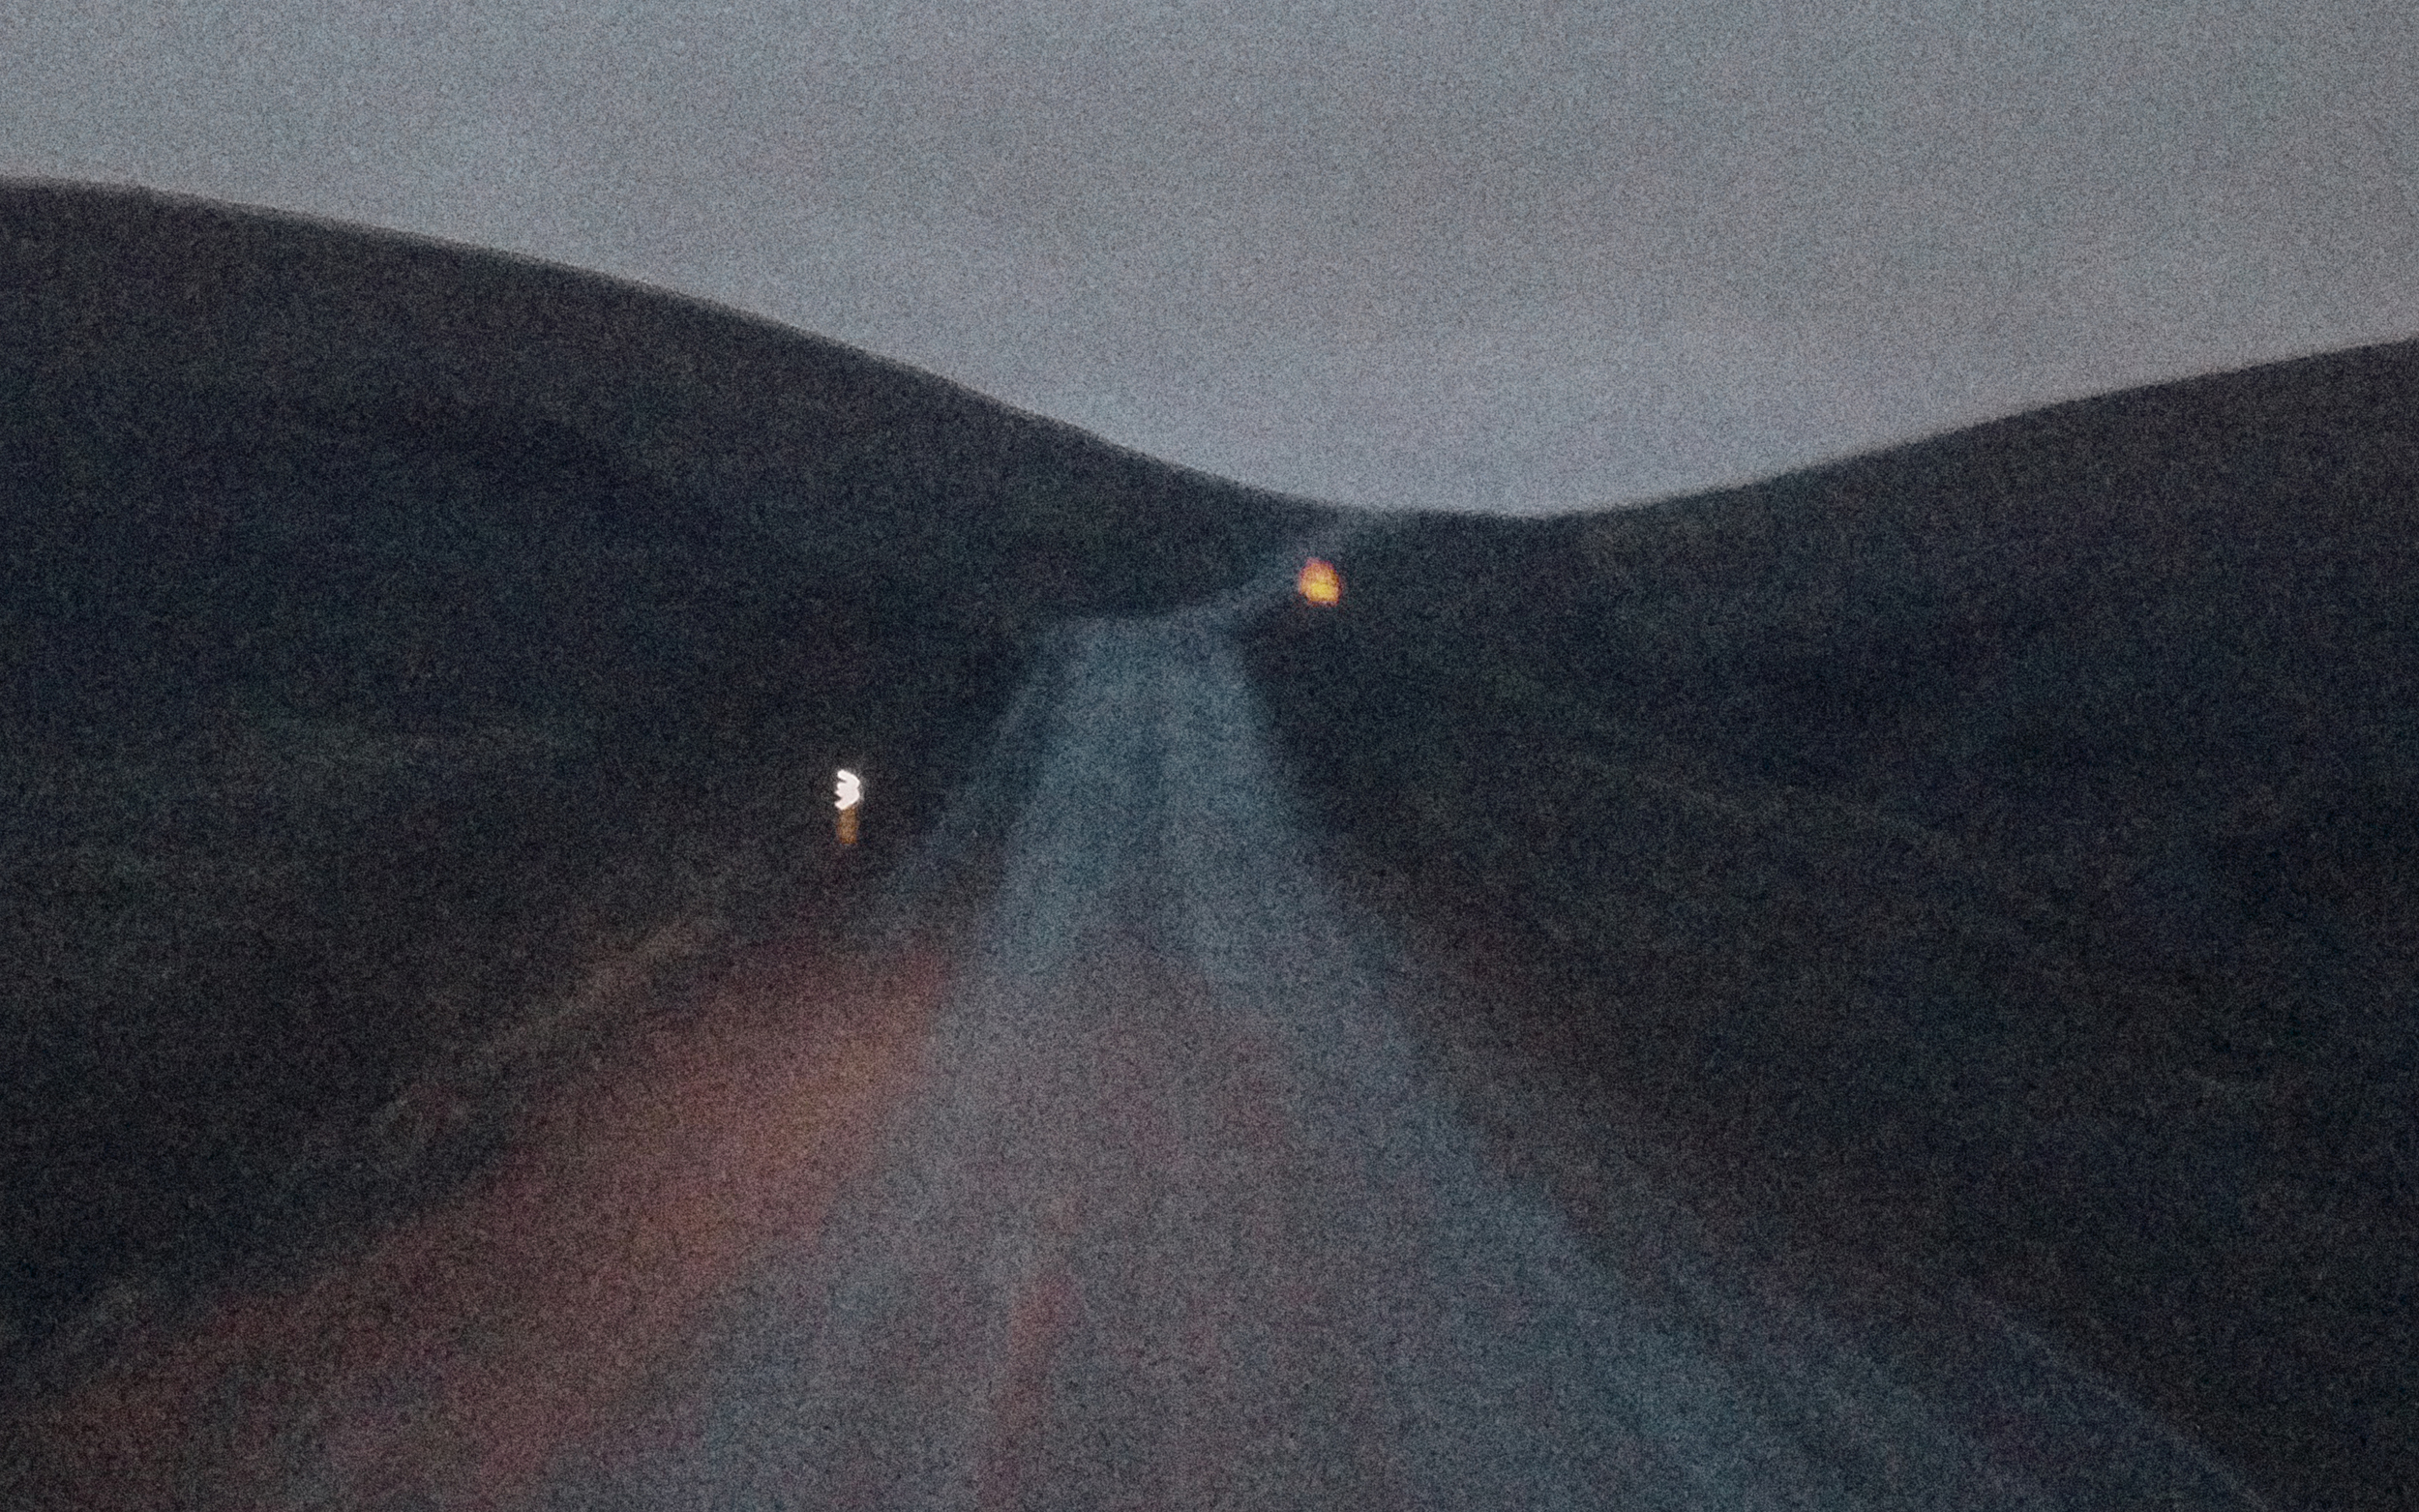 dominik_tarabanski_-_calendar_2015_lato_no_layout_02_crop.jpg